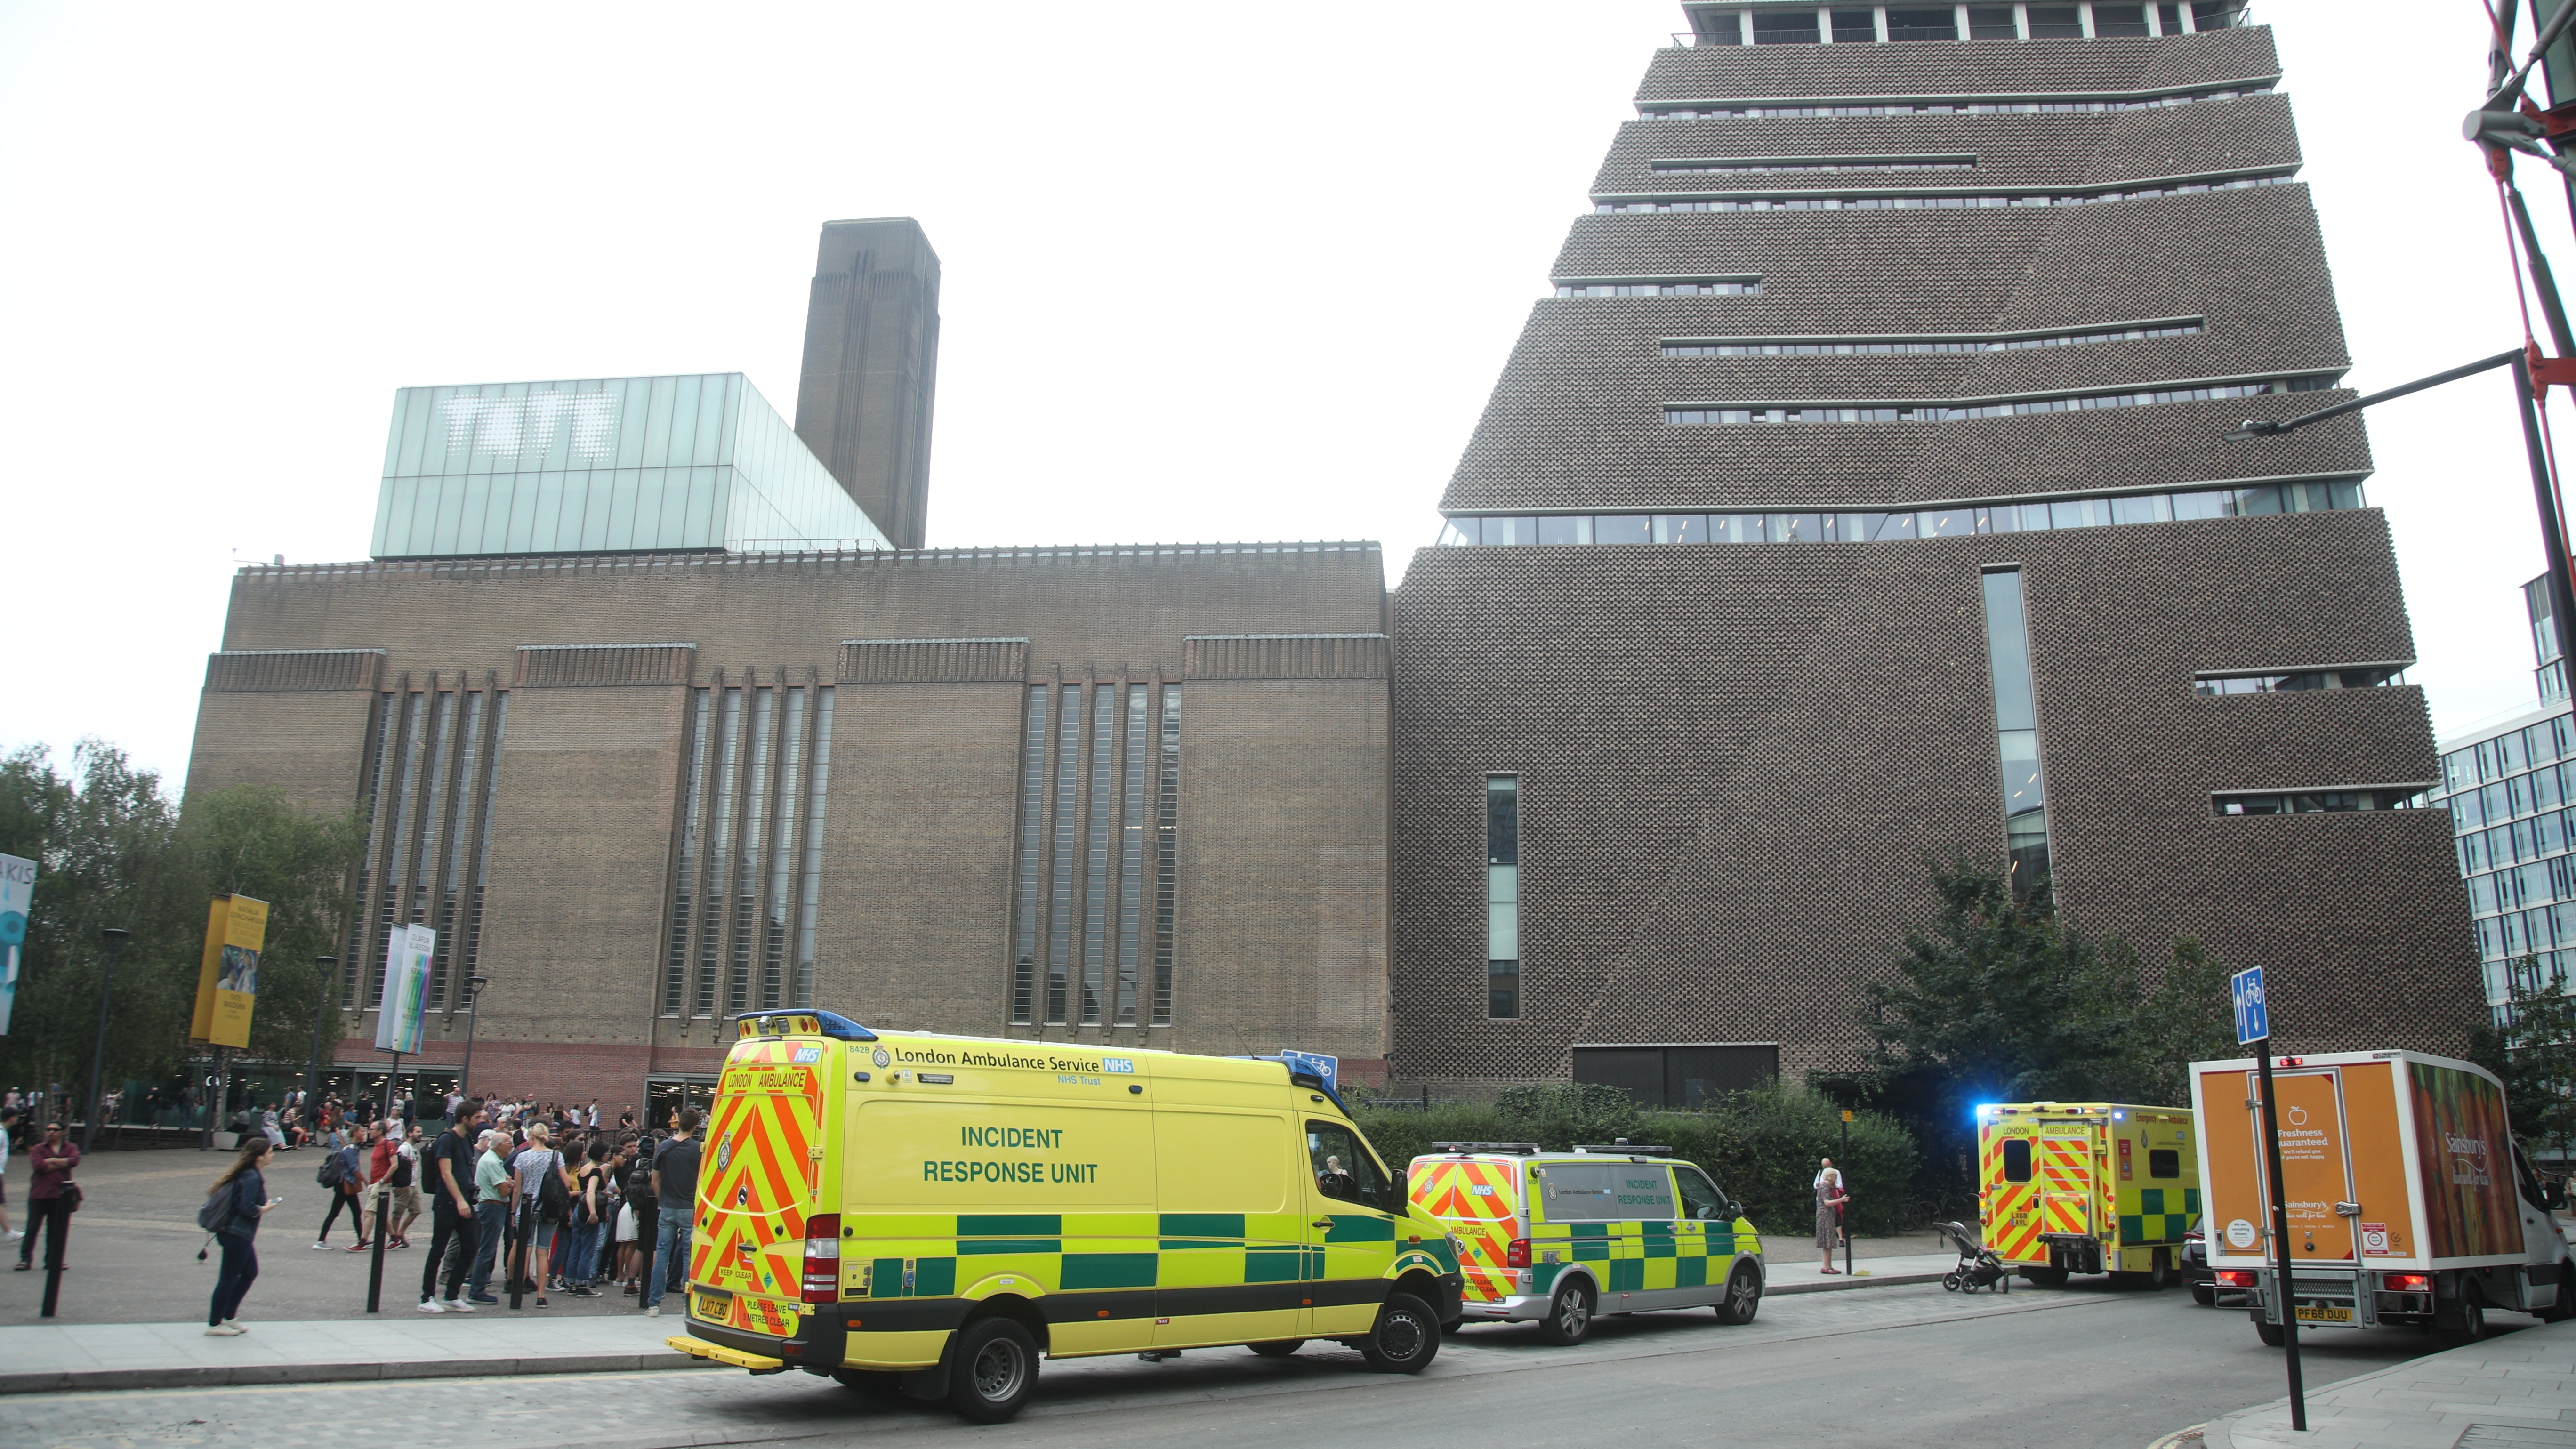 Teenager arrested after child falls 'from height' at Tate Modern gallery